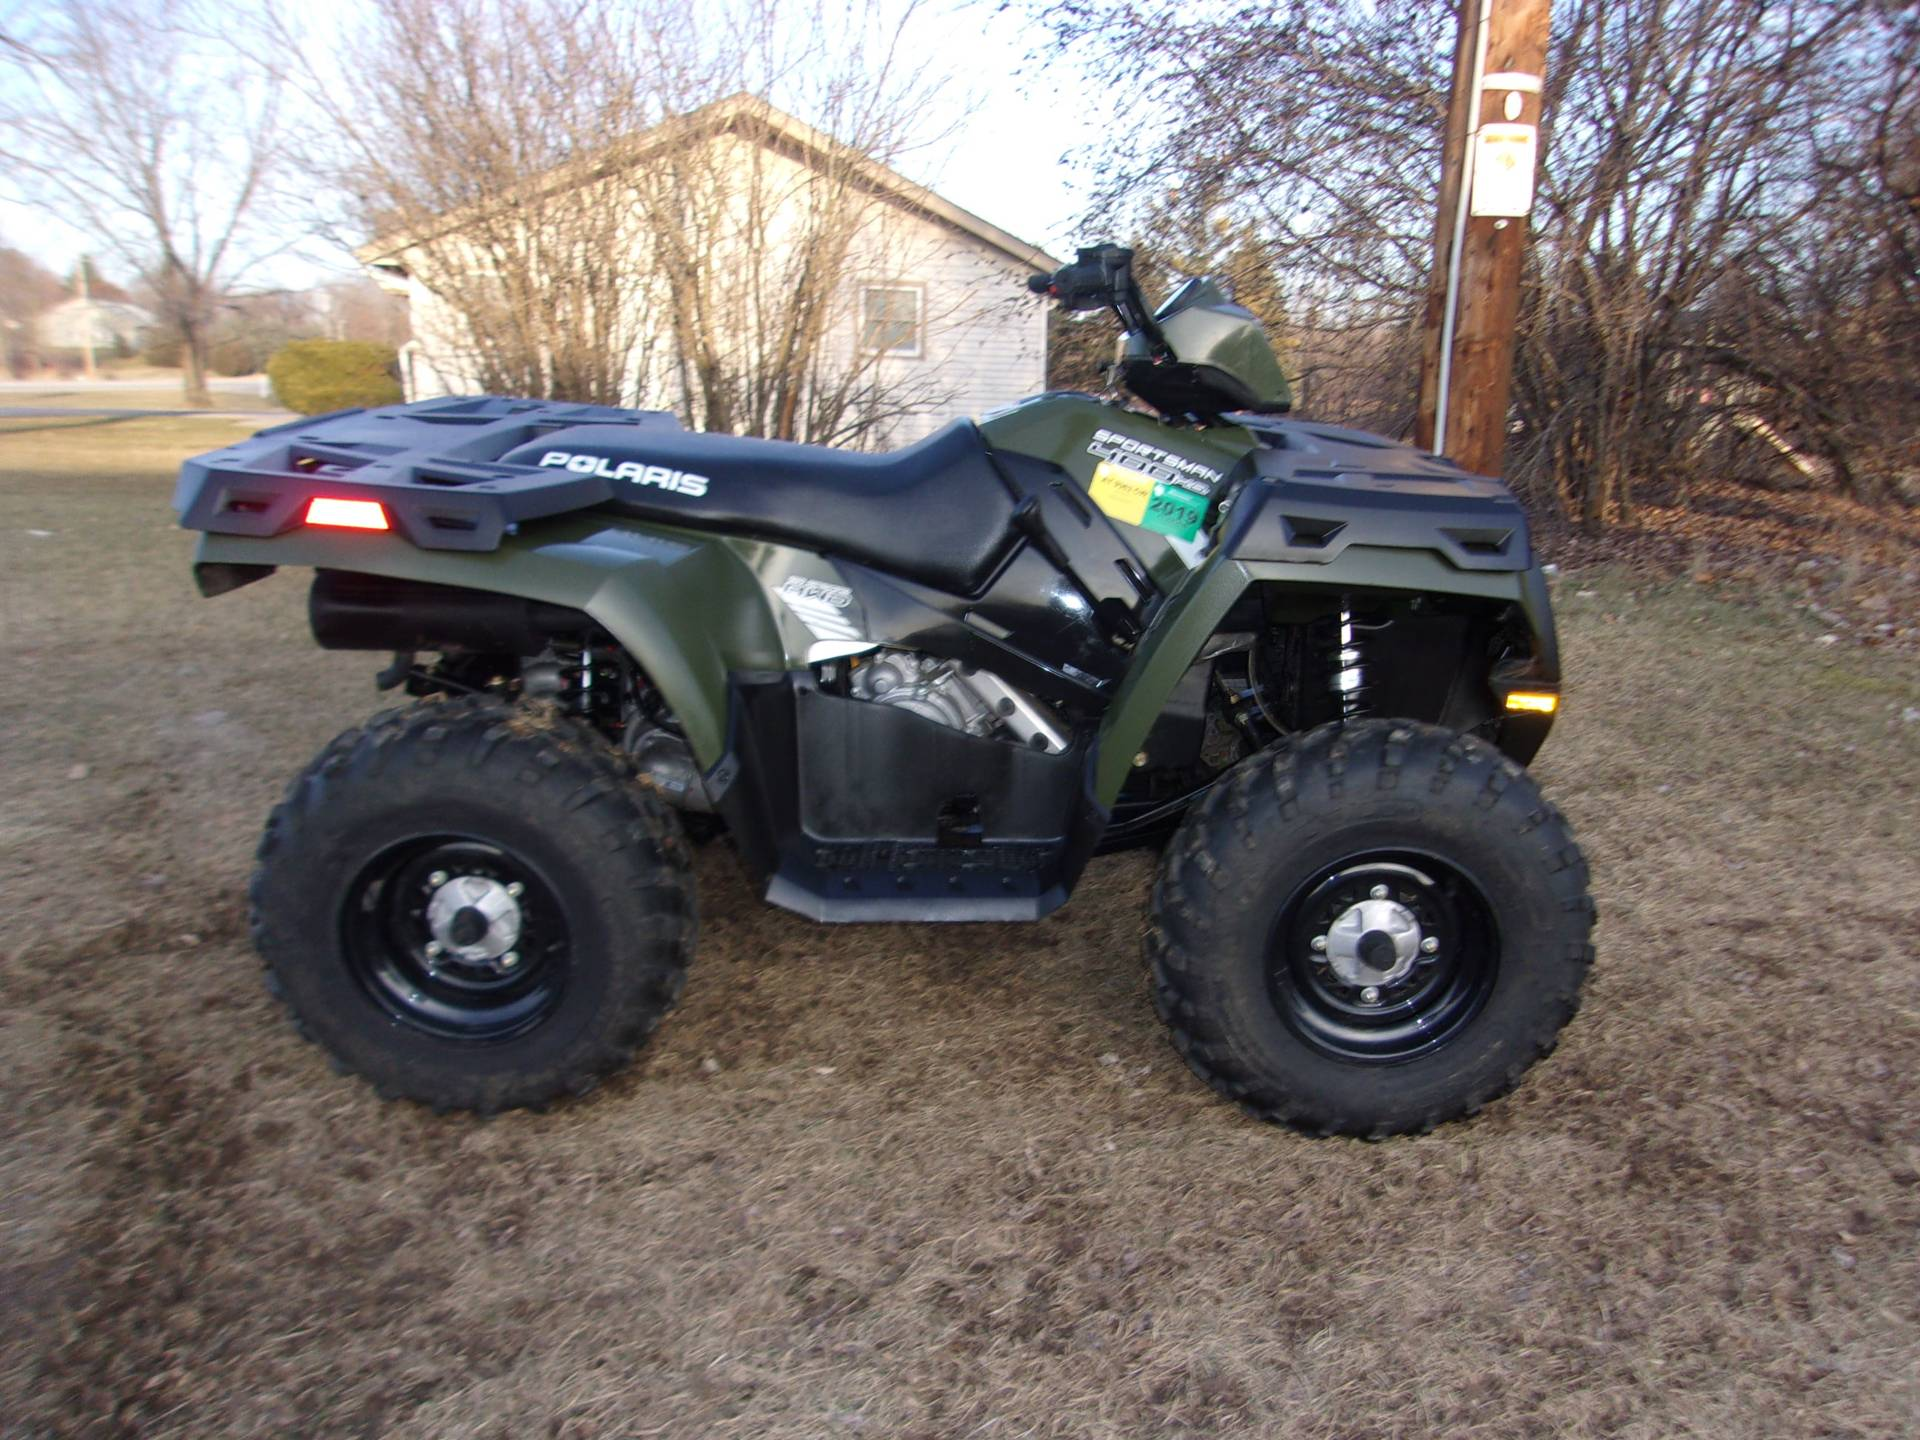 2013 Polaris Sportsman® 400 H.O. in Mukwonago, Wisconsin - Photo 6